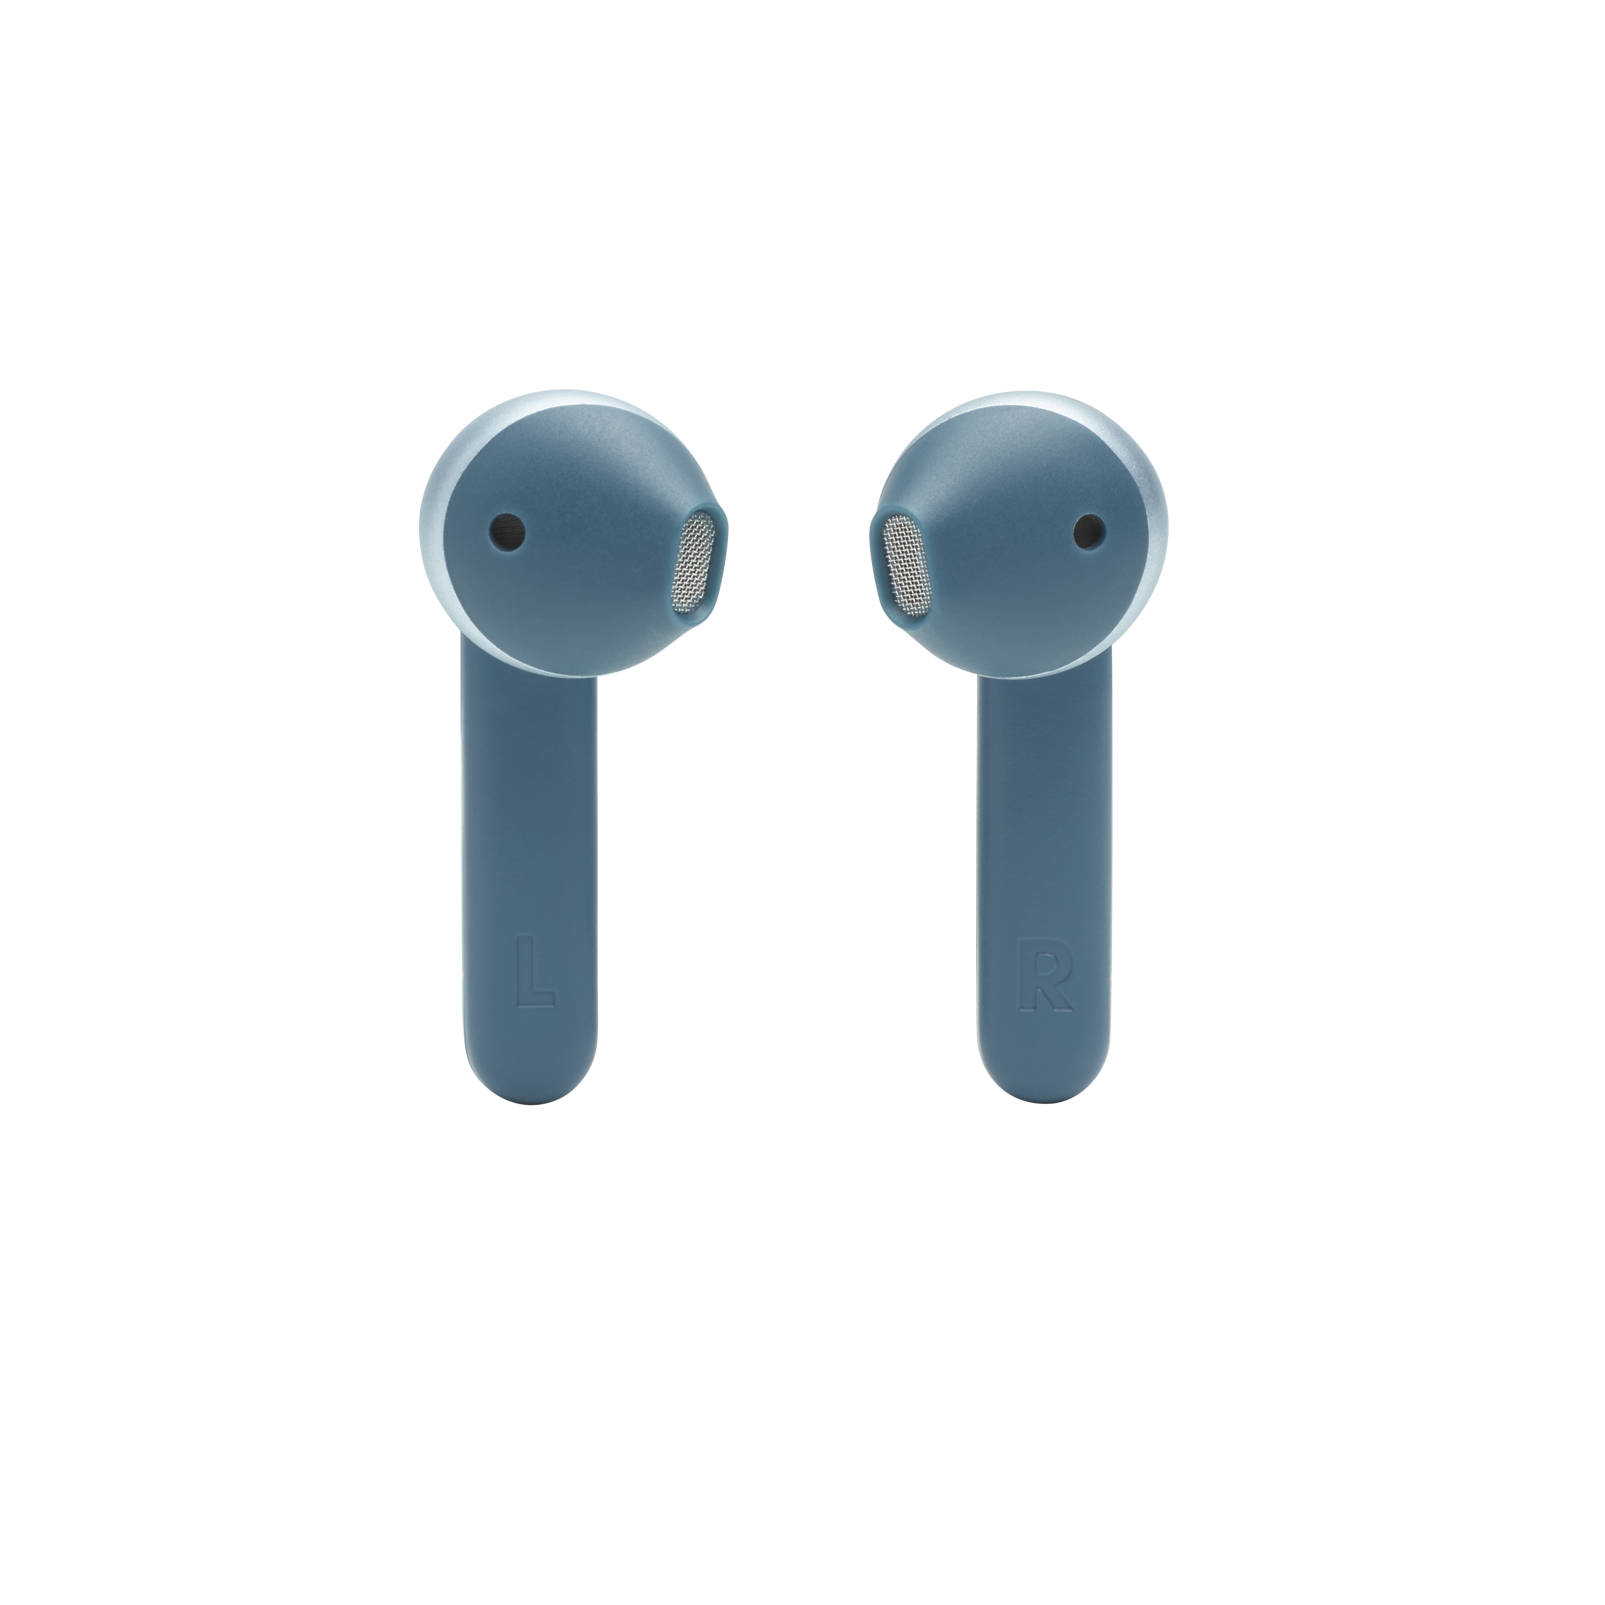 JBL Tune 225TWS - Blue - True wireless earbuds - Detailshot 1